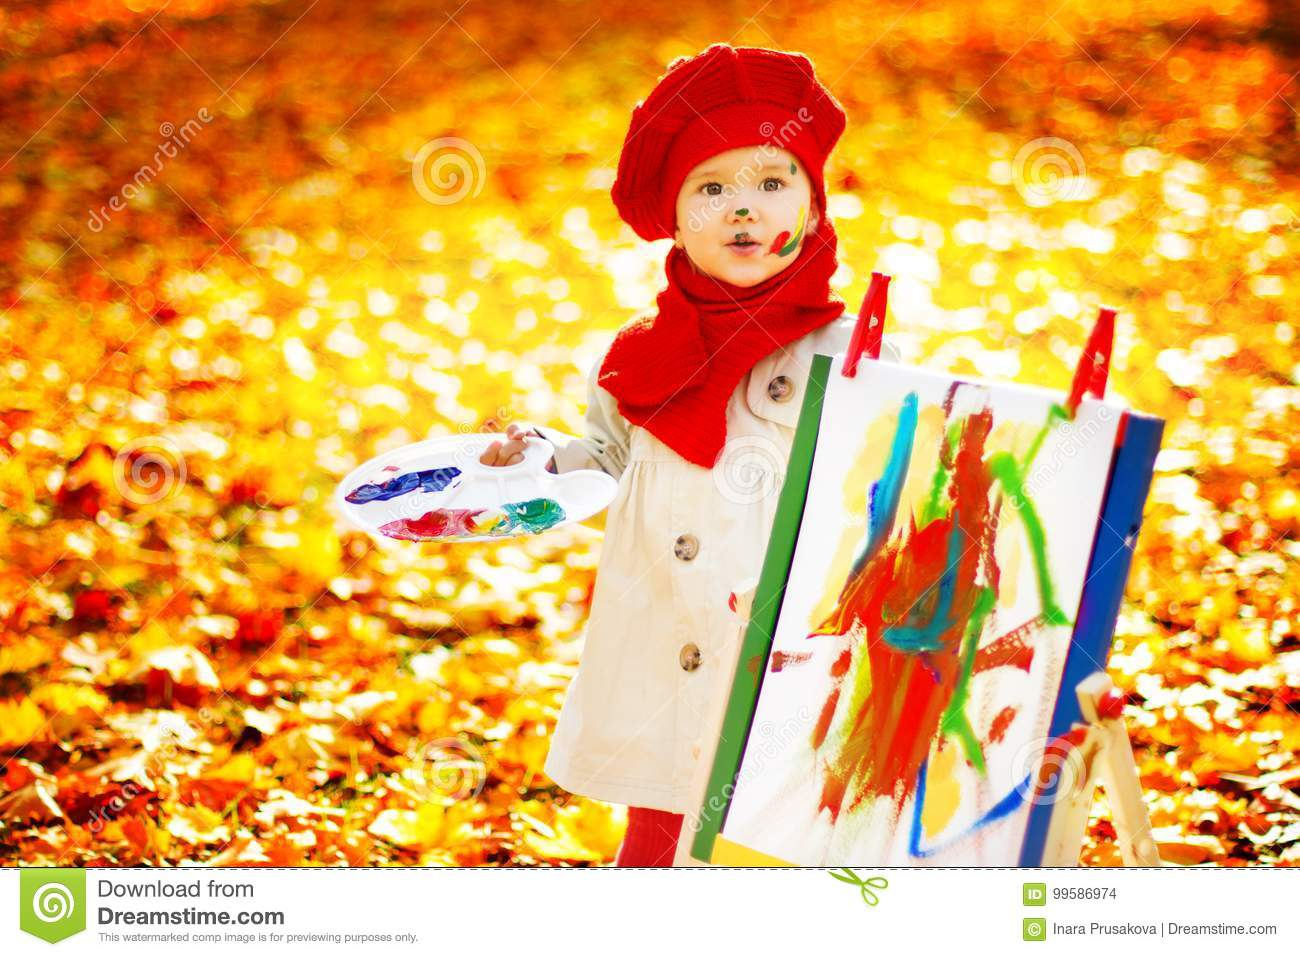 Autumn Child Painting Art Picture, Jong geitjekunstenaar Drawing Fall Leave